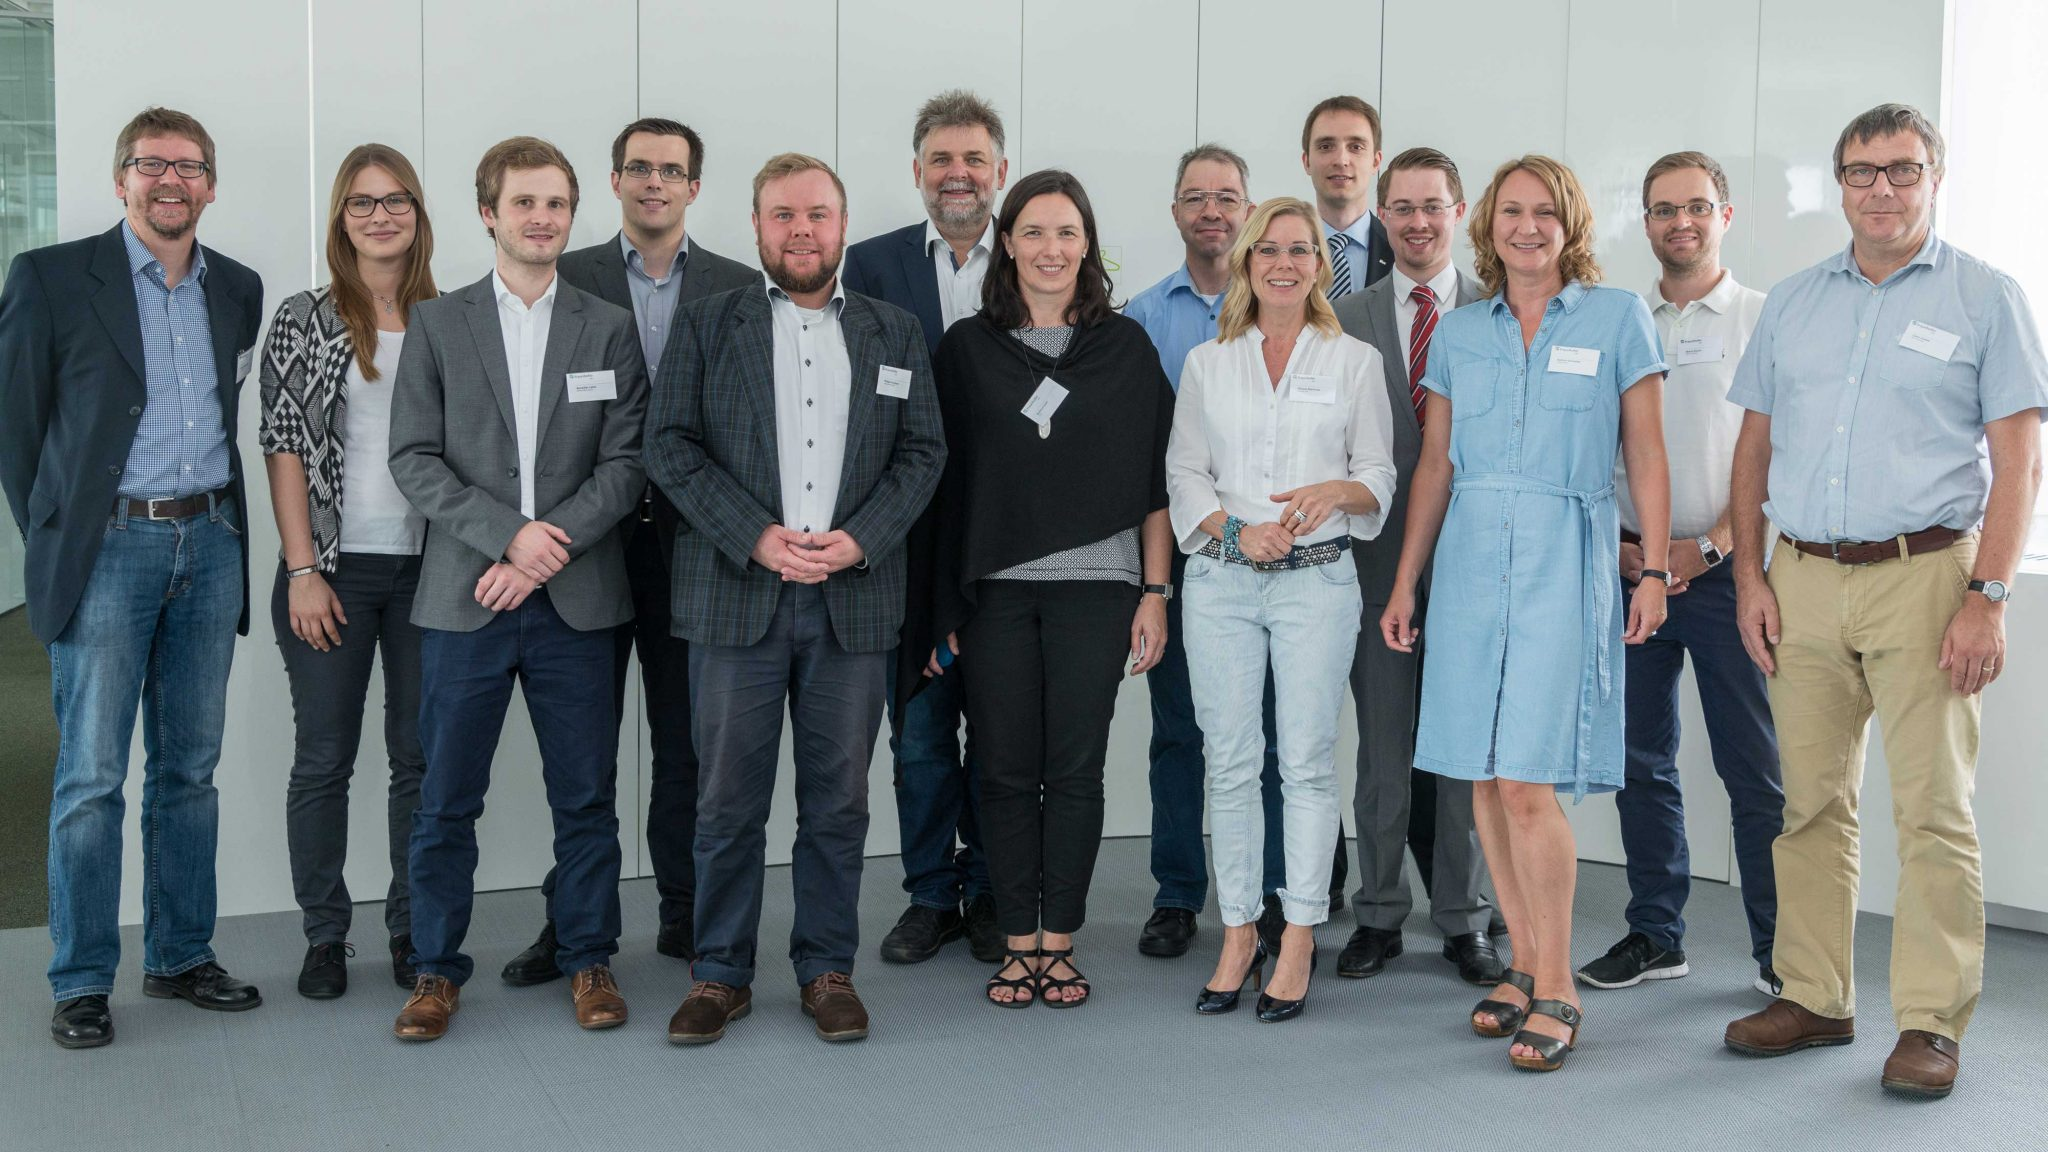 WP-Kick-off August 2016 Gruppenfoto